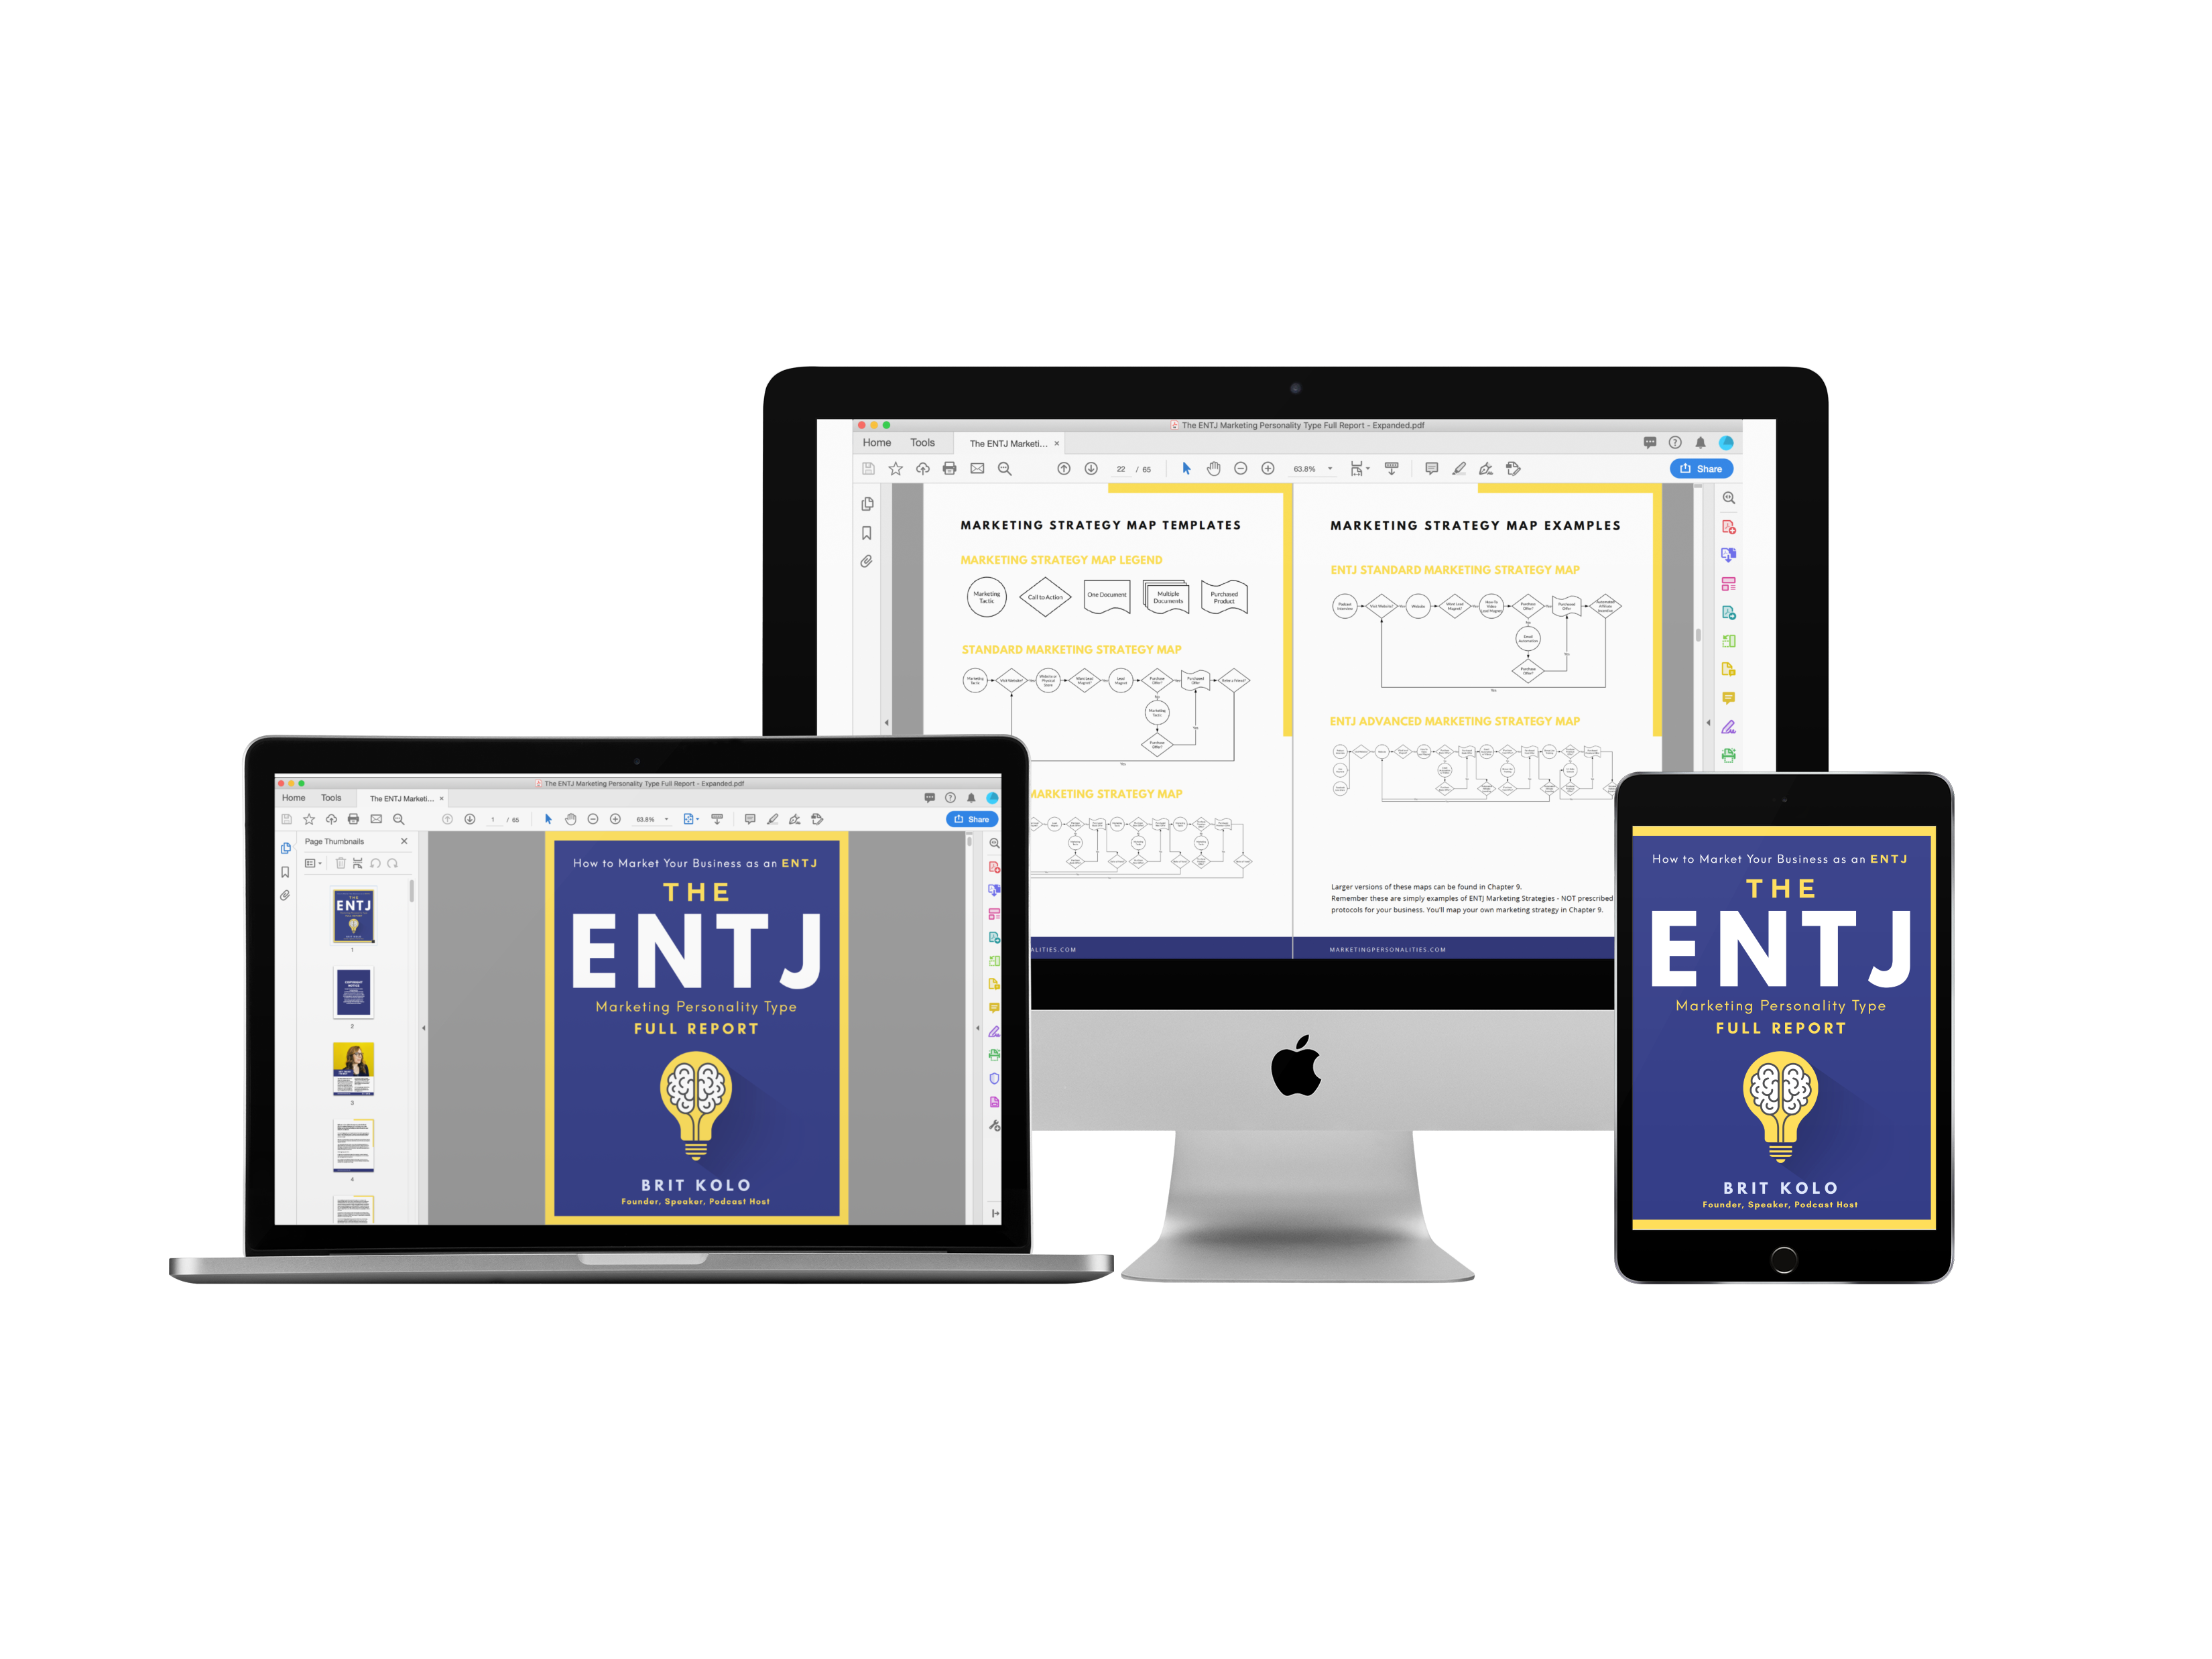 ENTJ Marketing Personality Type Full Report Product